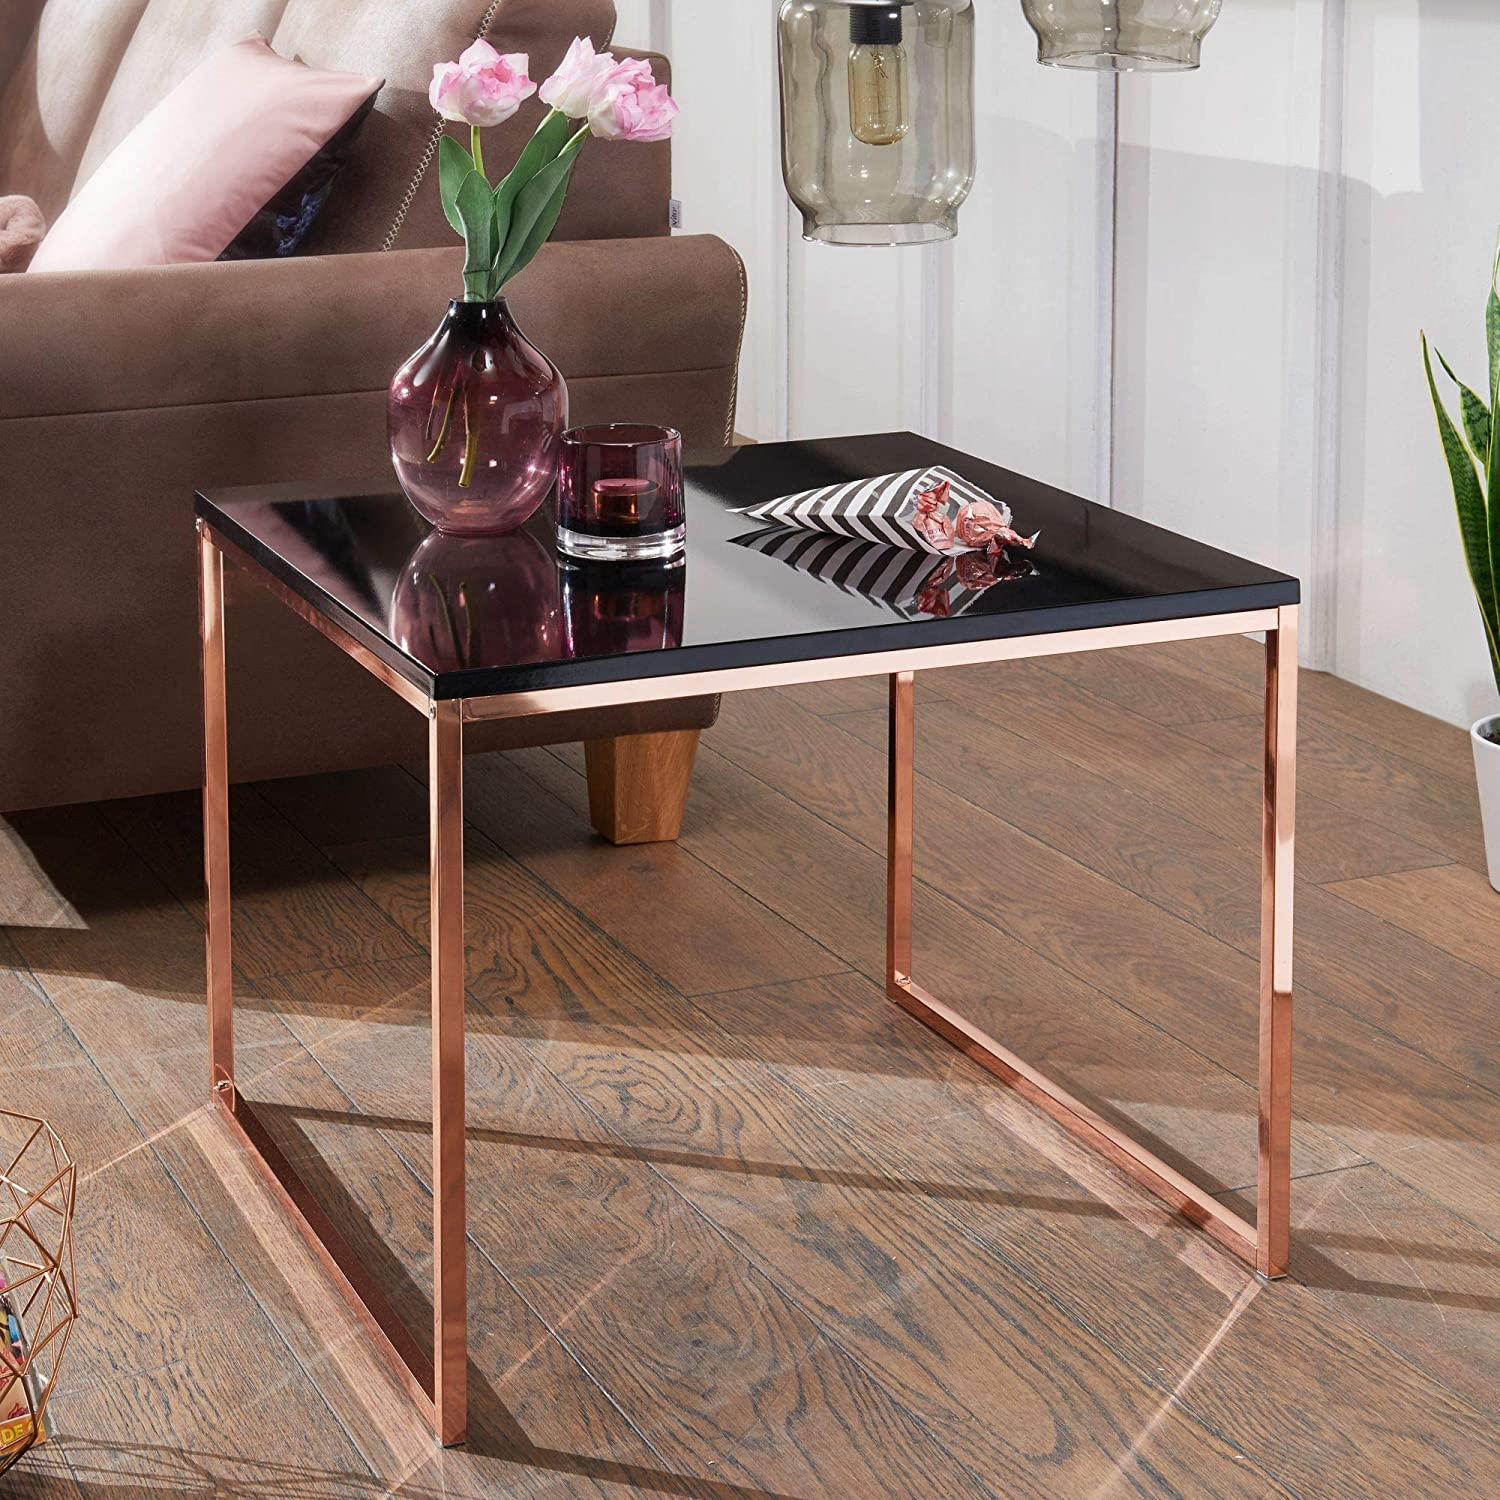 Table Basse Table De Salon Carre Finebuy Design Table Metal